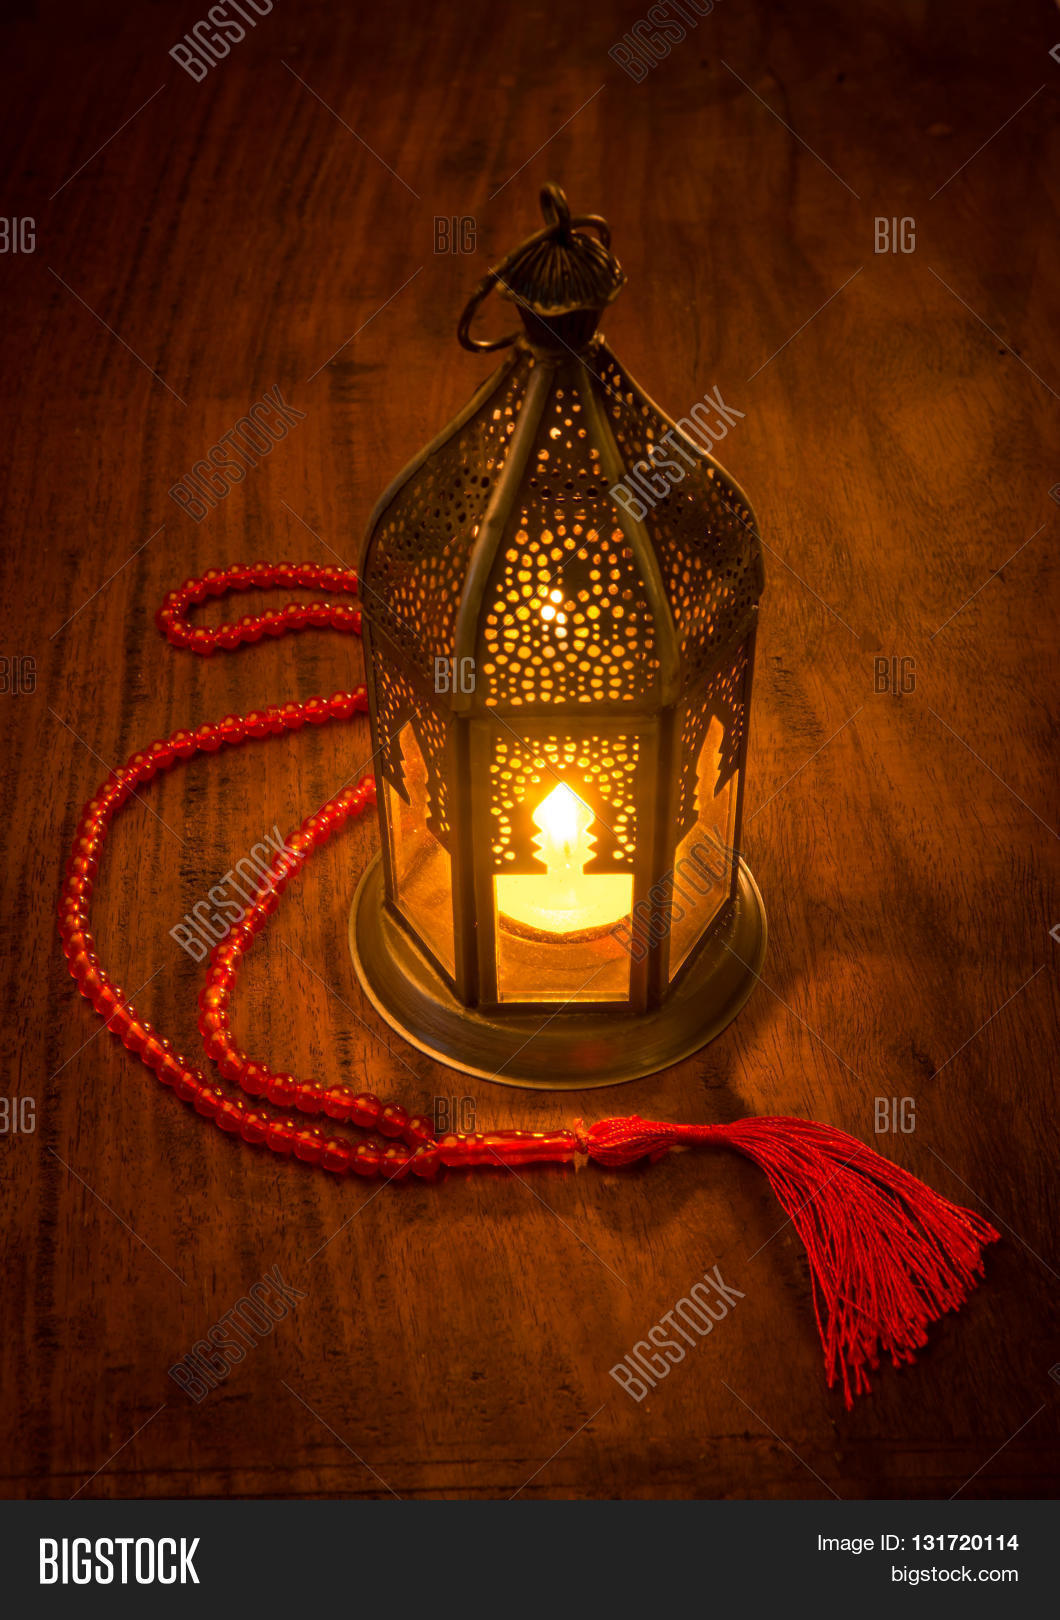 ramadan lamp islamic image photo free trial bigstock ramadan lamp islamic image photo